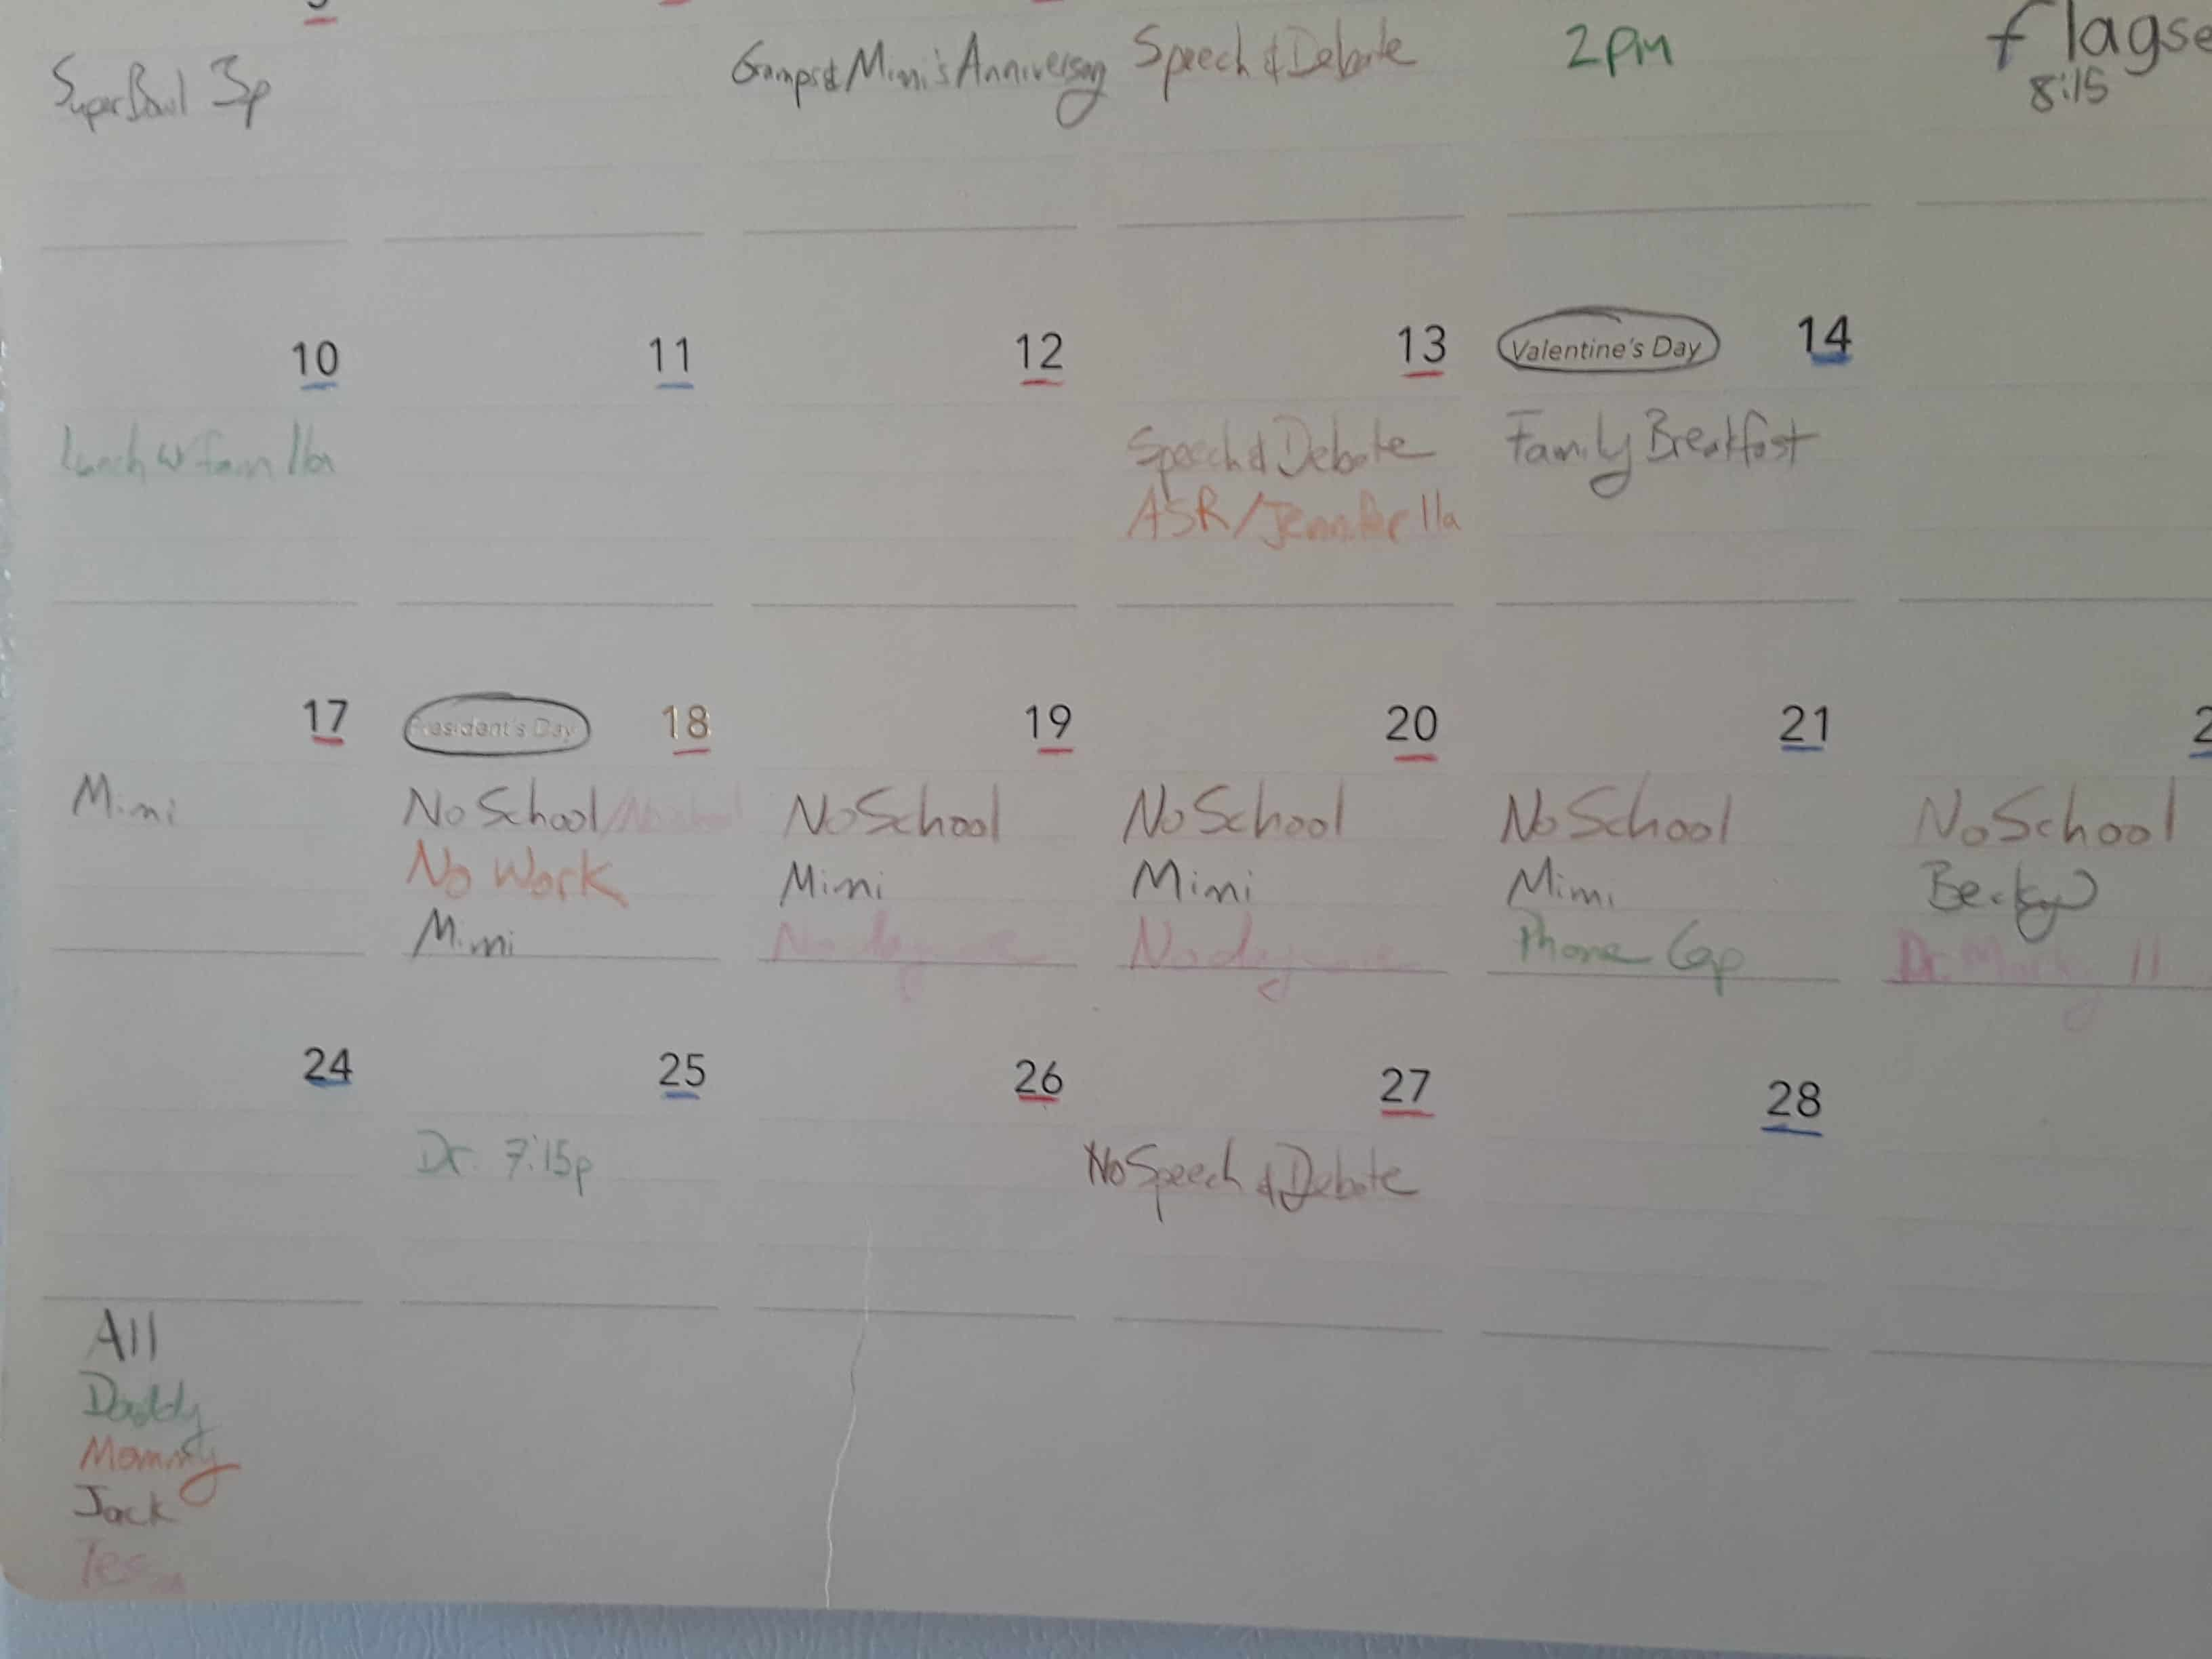 Calendar picture with different events marked on different dates